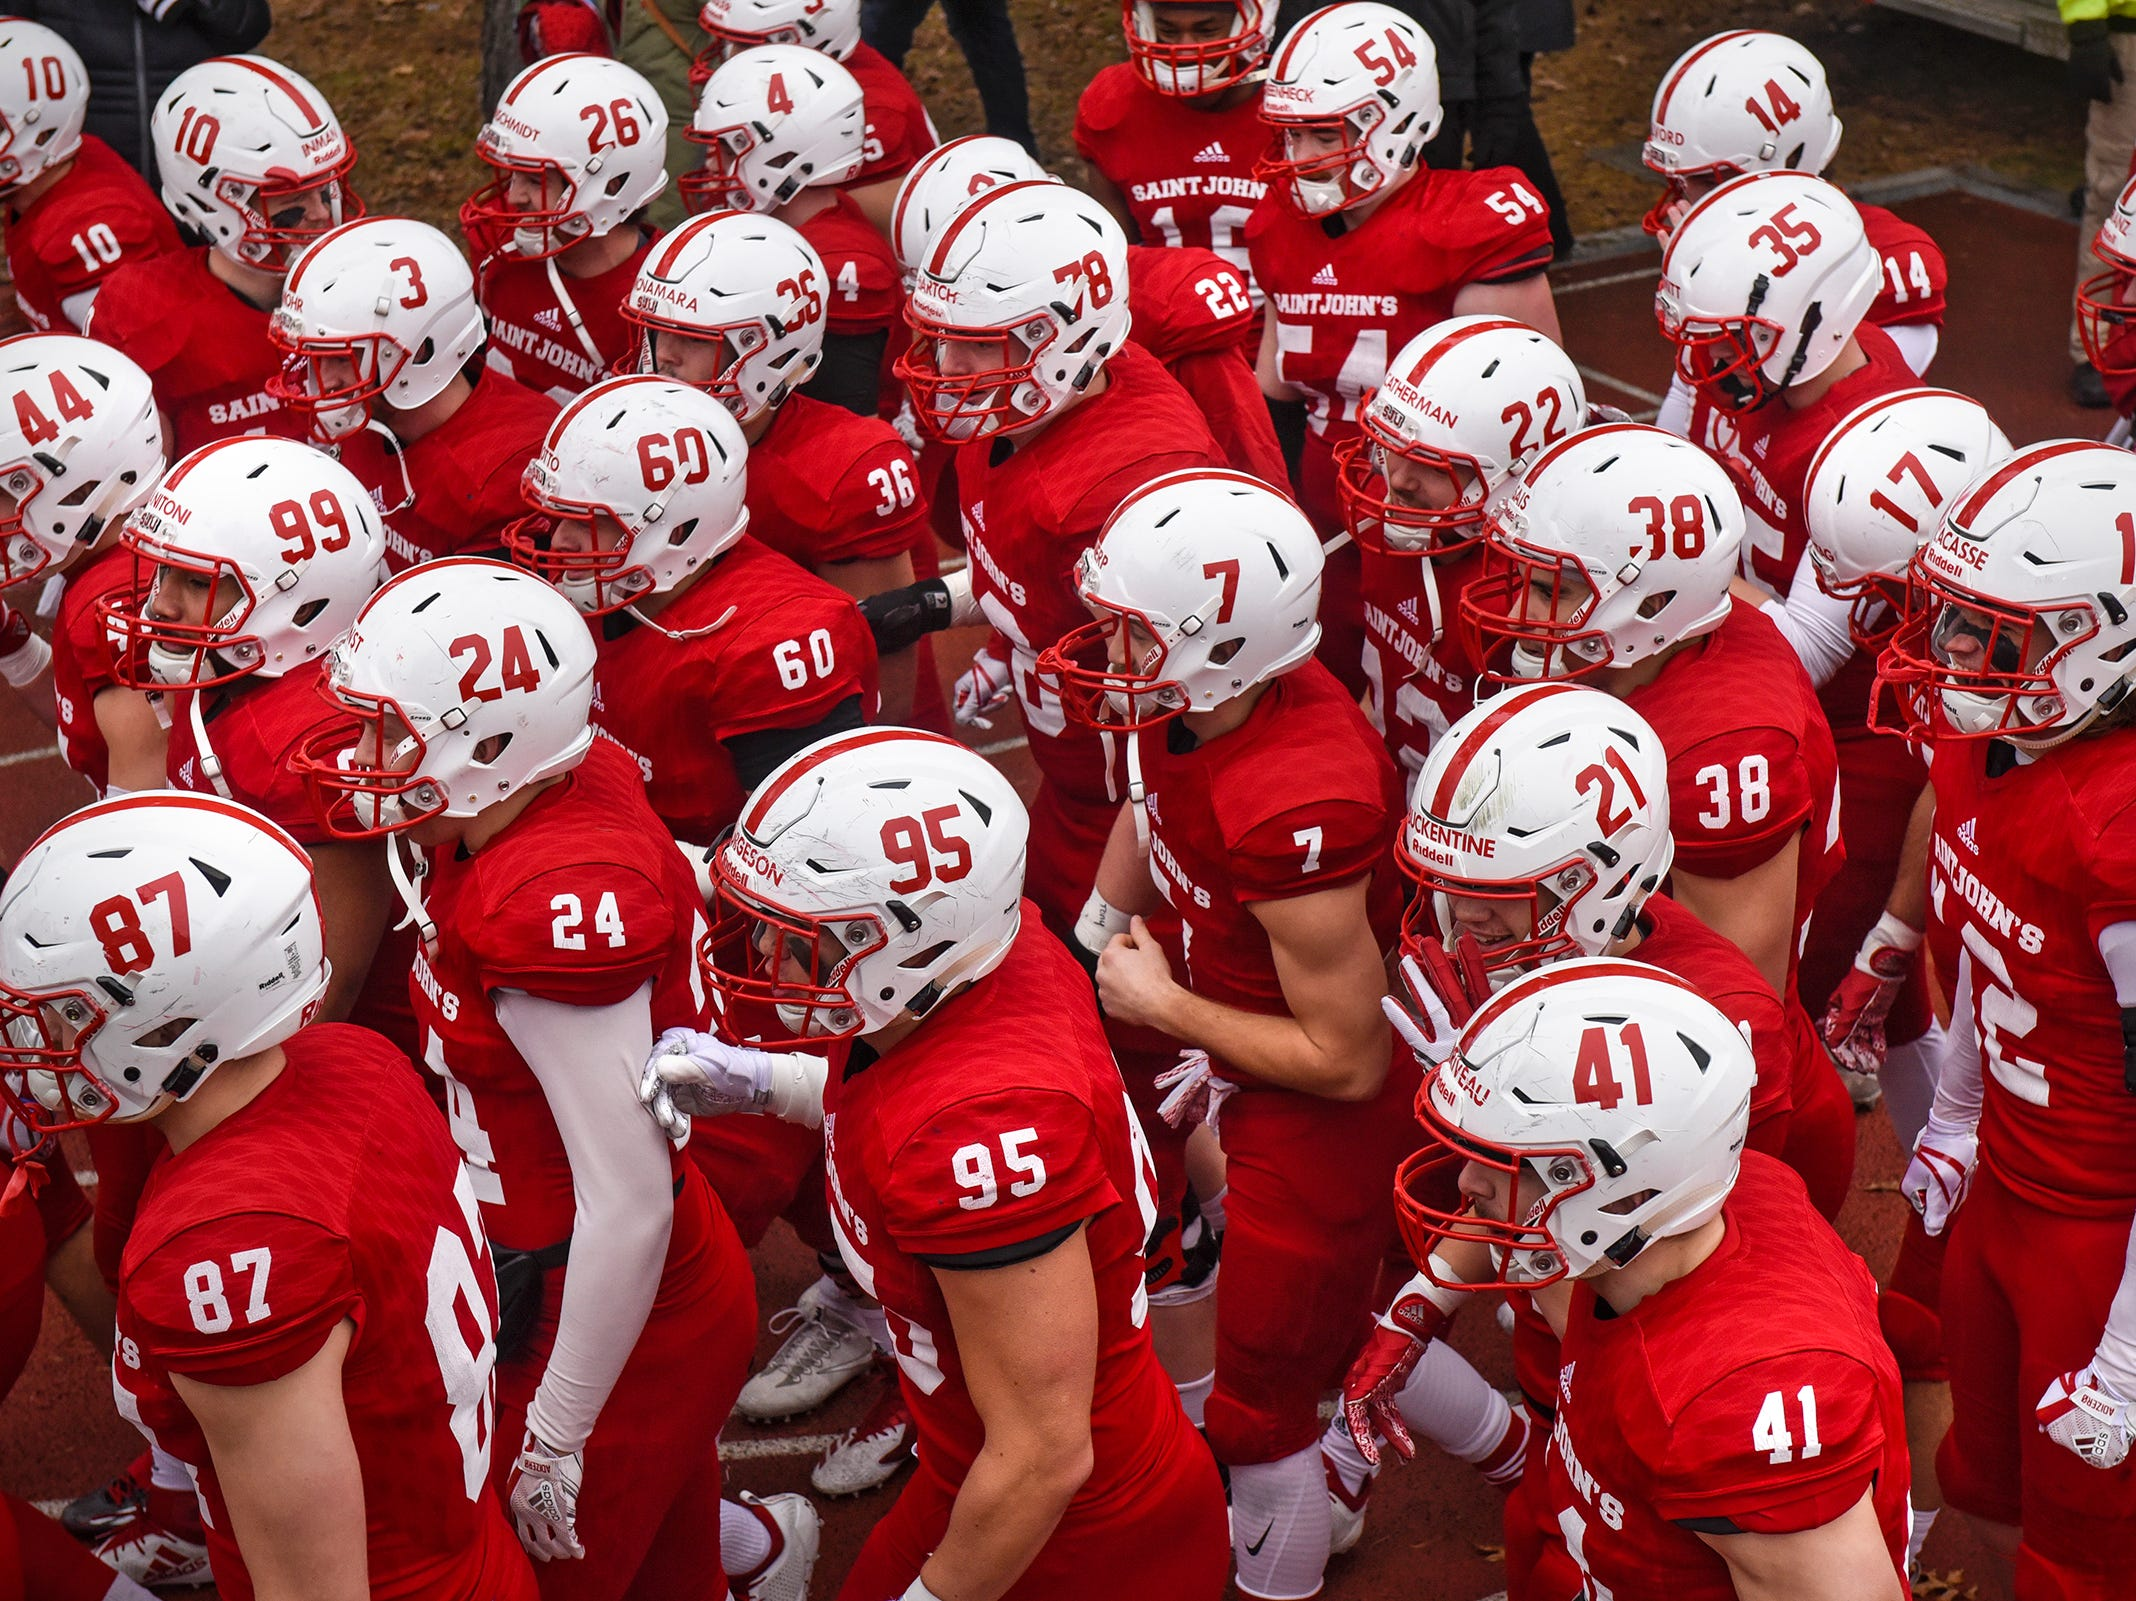 SJU advances in playoffs against Whitworth